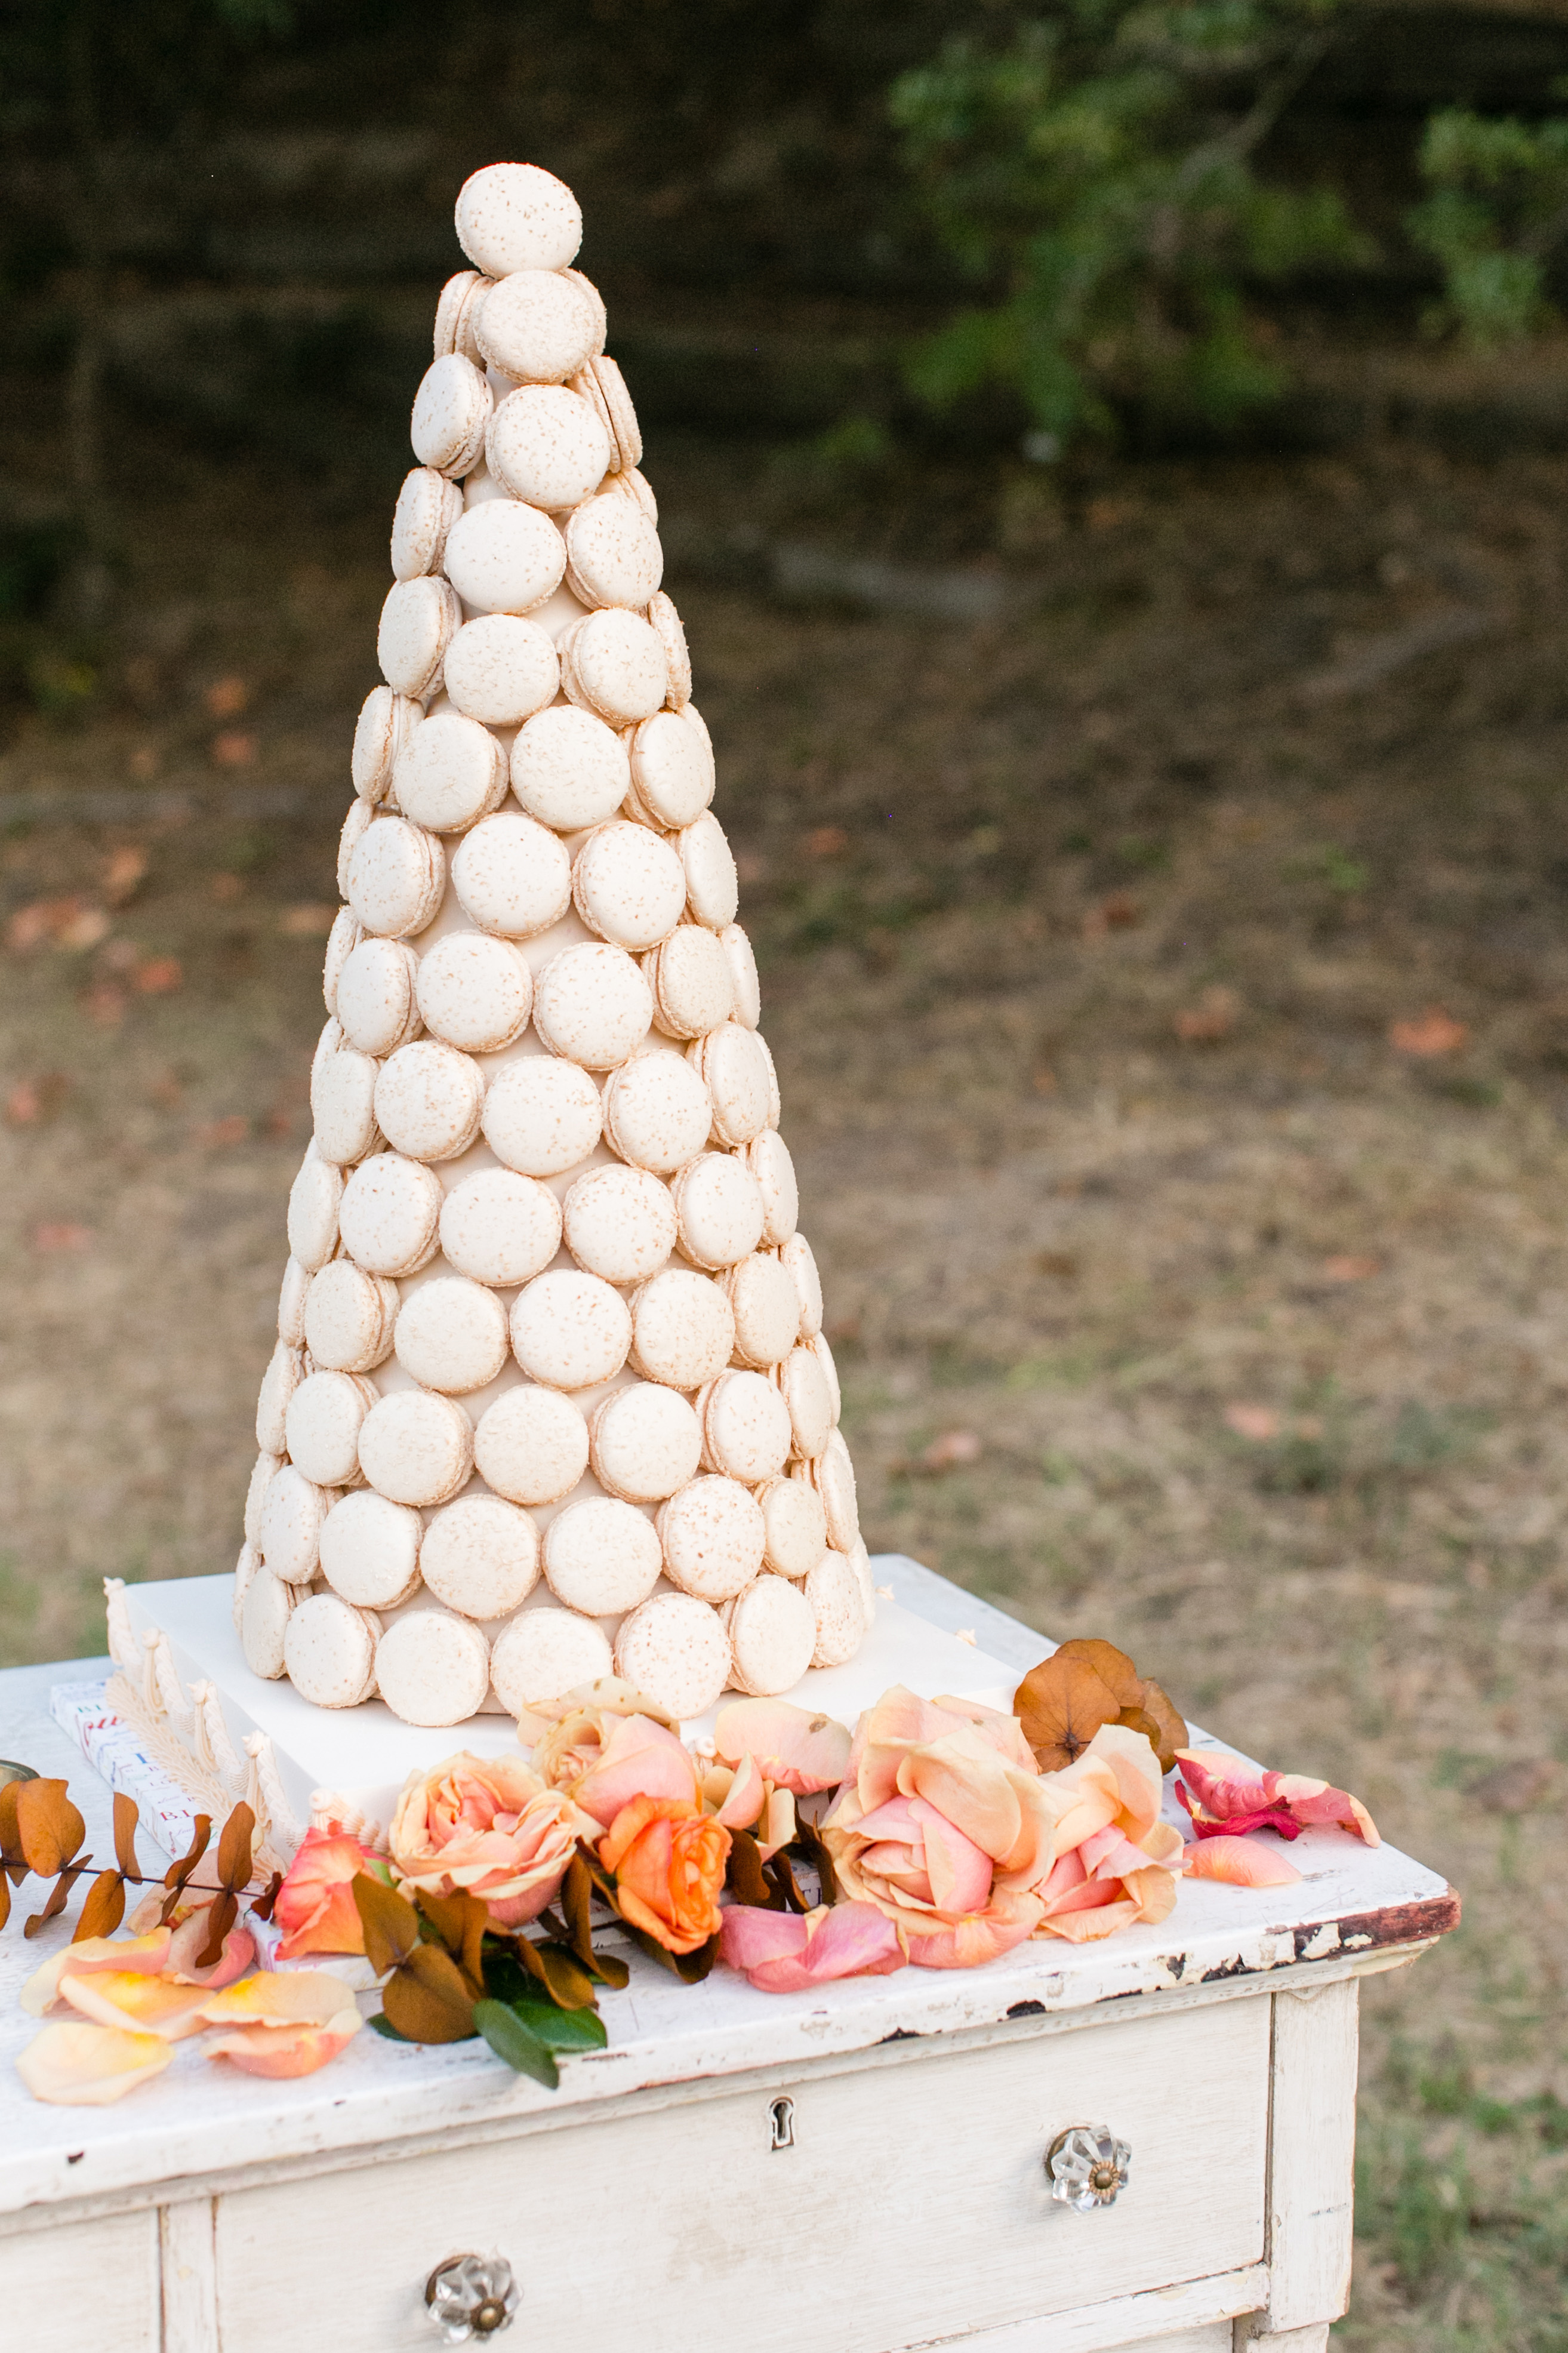 Modified Croquembouche